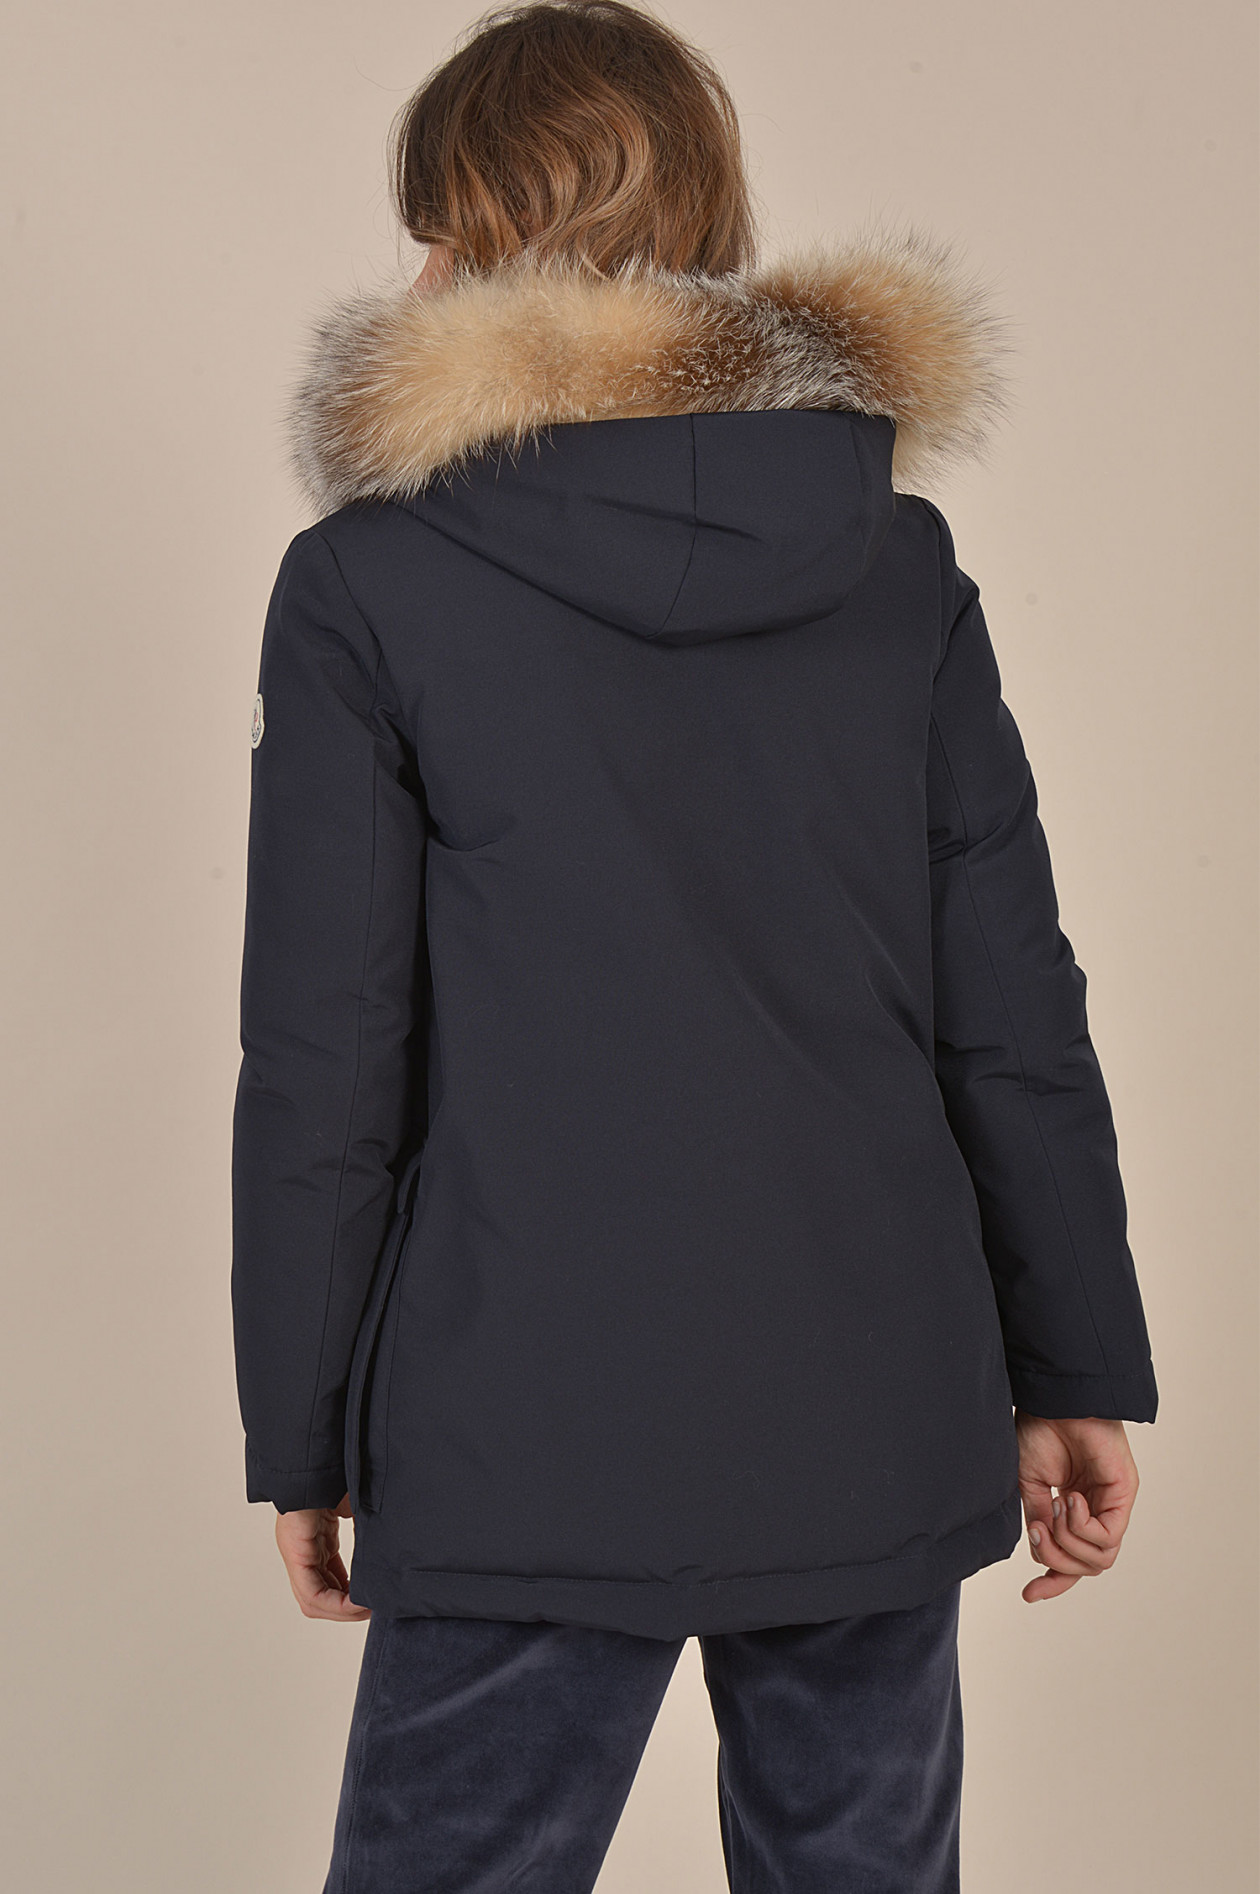 meet 12293 82a0a Jacke COUVITE in Navy